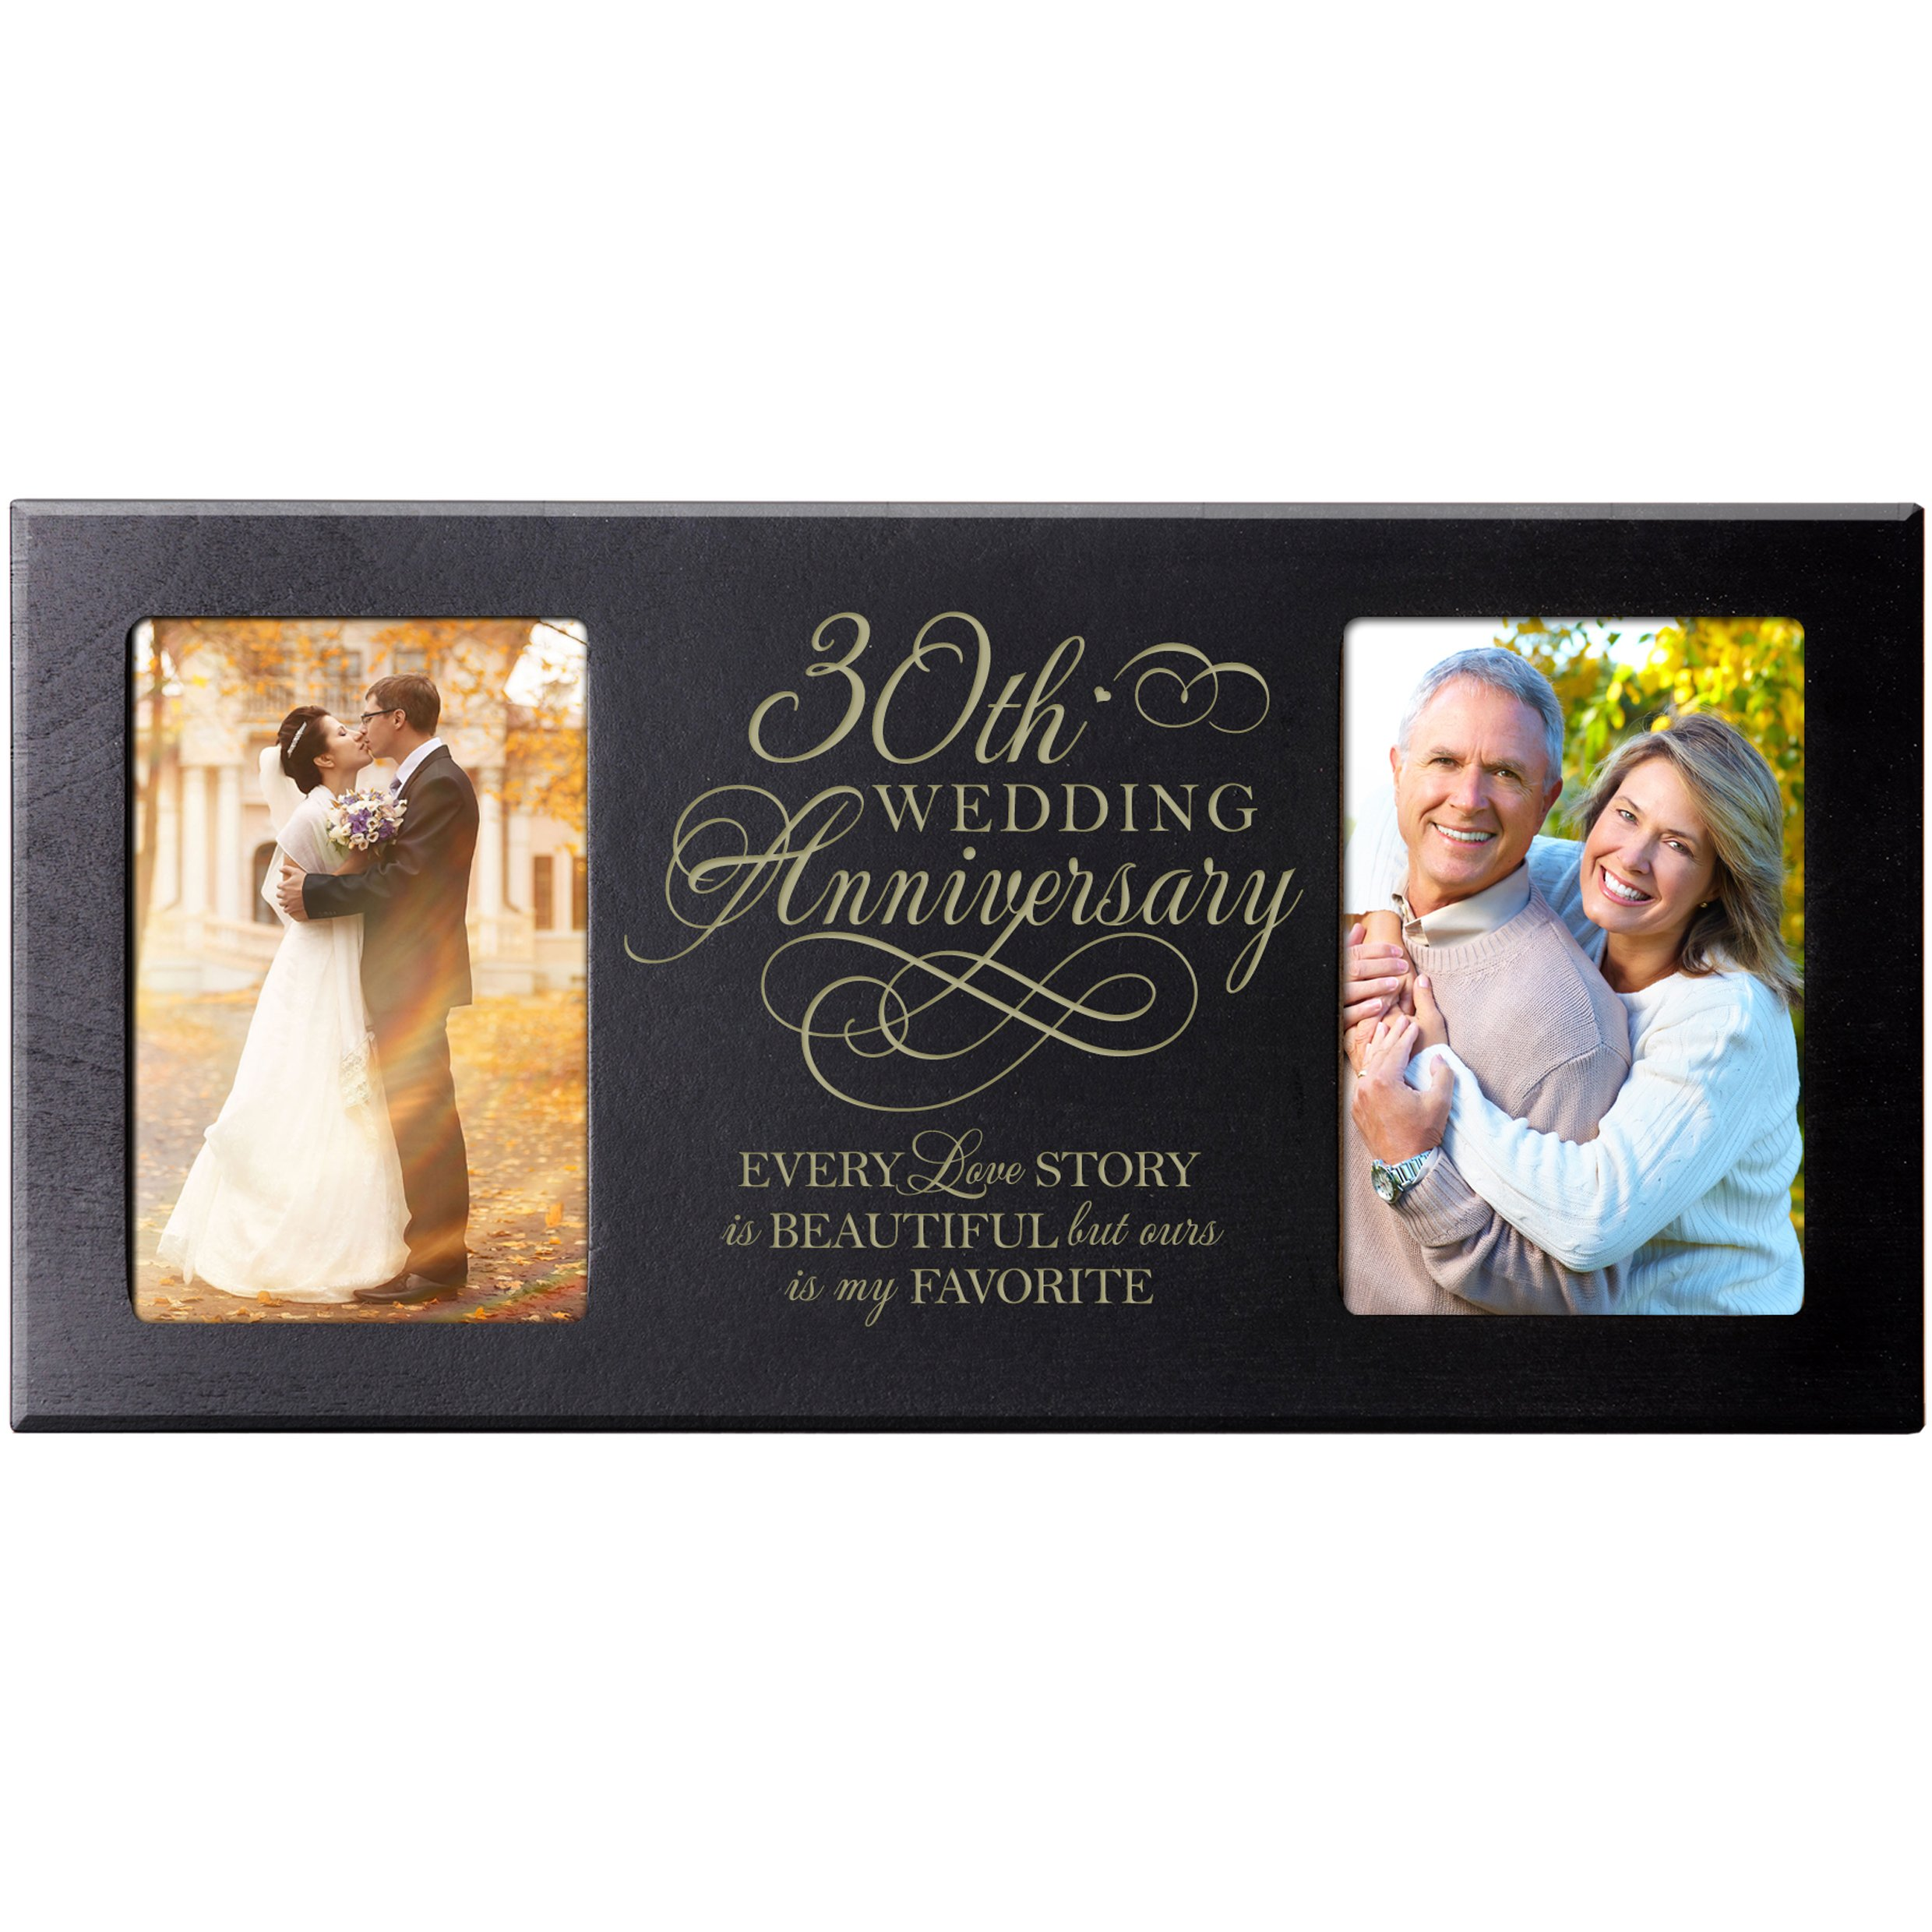 LifeSong Milestones Every Love Story is Beautiful but Ours is My Favorite Anniversary Picture Frame Gift for Couple,30th for Her,30th Wedding for Him Frame Holds 2-4x6 Photos (Black) by LifeSong Milestones